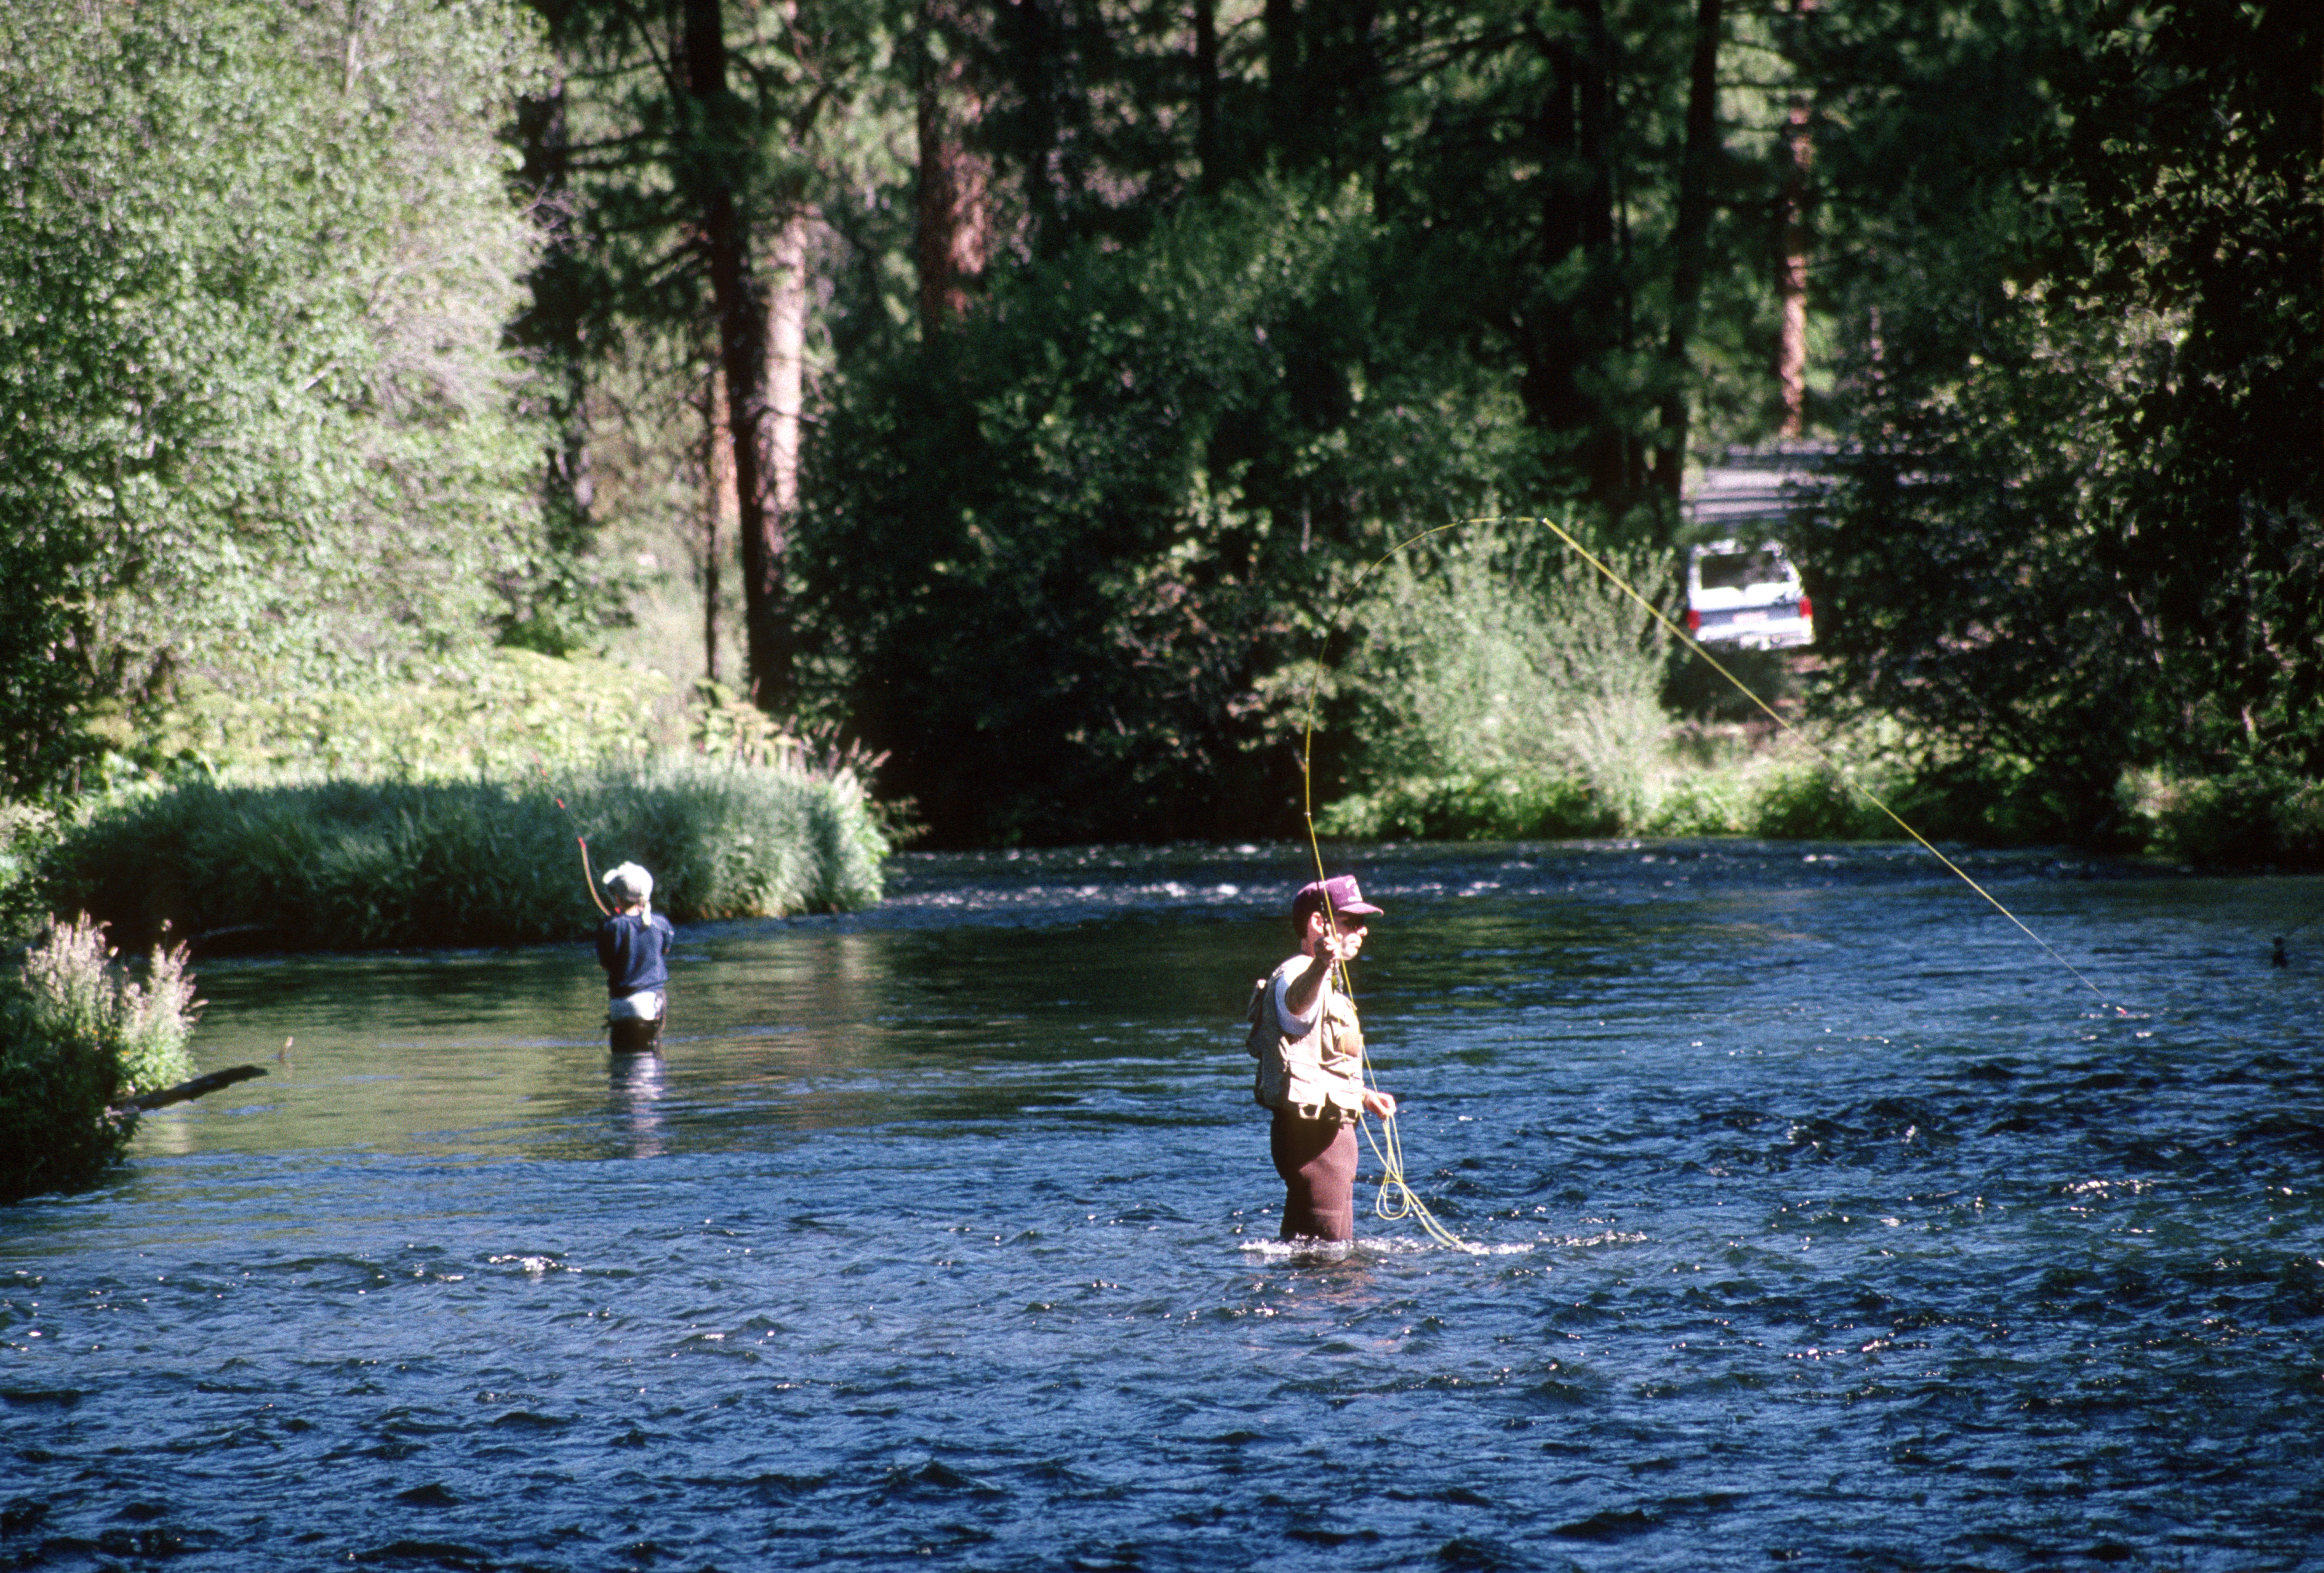 File:Fly fishing Metolius River, Deschutes National Forest